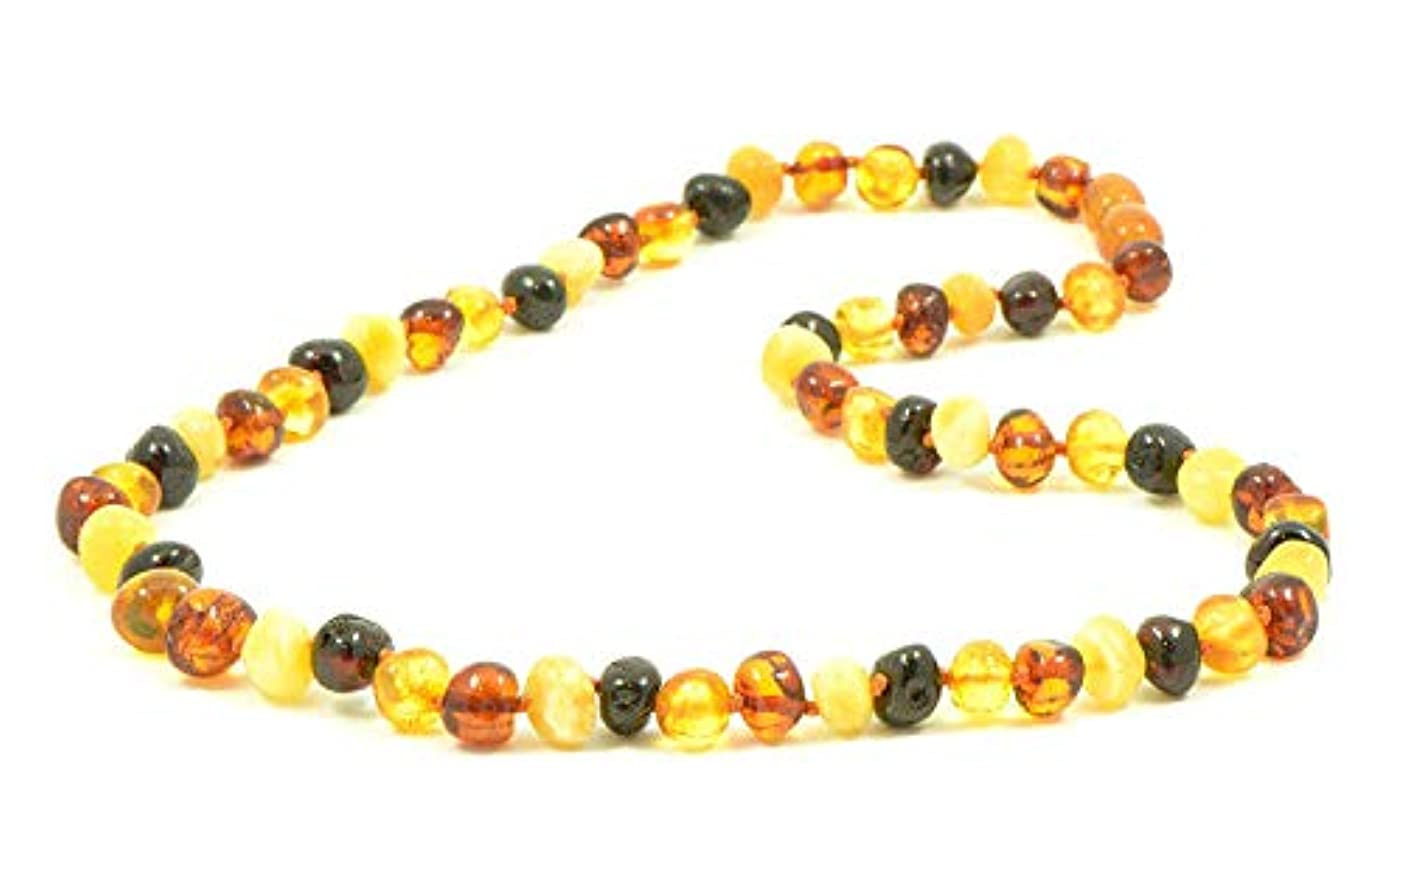 無視する荷物軽く(50cm) - AmberJewelry Baltic Amber Necklaces for Adults - 46cm - 50cm Made from Authentic Baltic Amber Beads -...